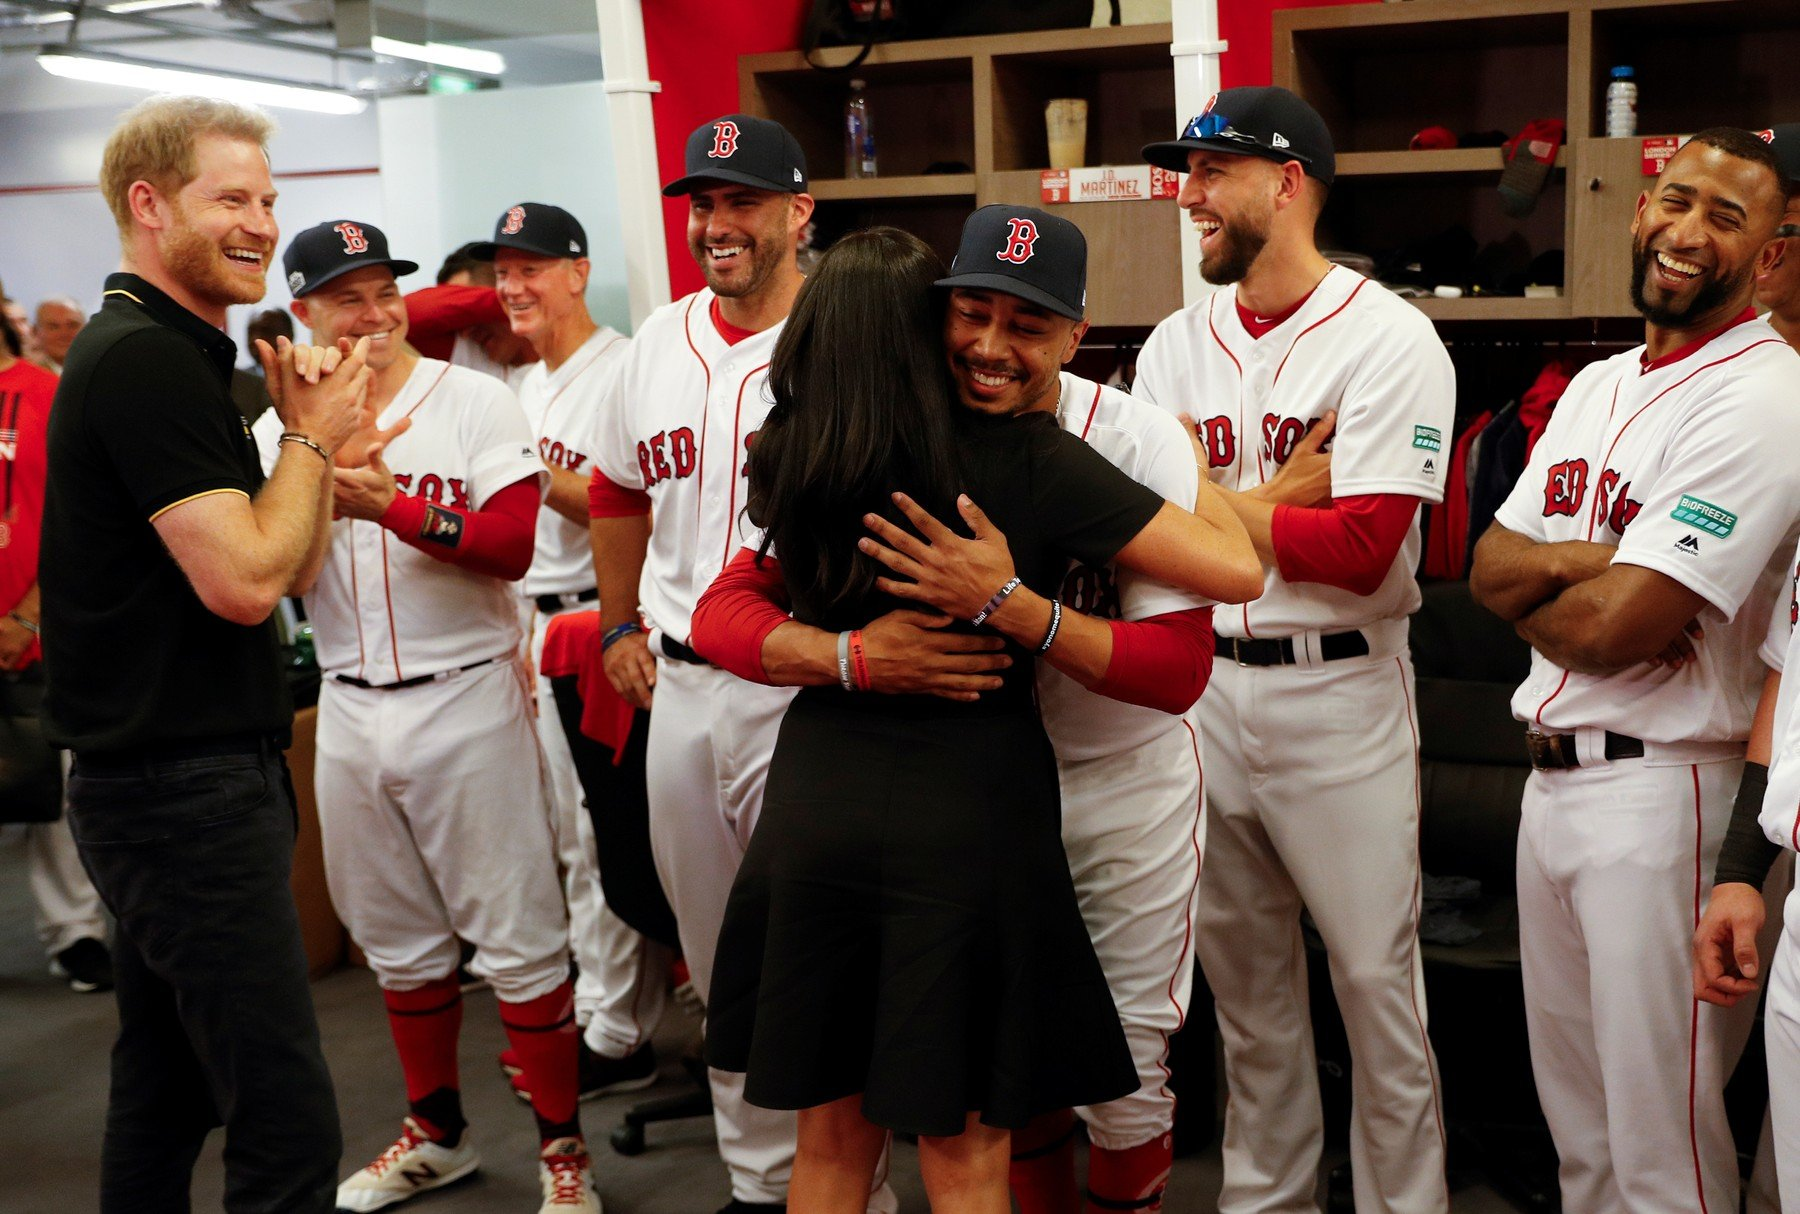 The Duke and Duchess of Sussex with players of the Boston Red Sox as they attend the Boston Red Sox vs New York Yankees baseball game at the London Stadium in support of the Invictus Games Foundation., Image: 452572285, License: Rights-managed, Restrictions: , Model Release: no, Credit line: Profimedia, Press Association